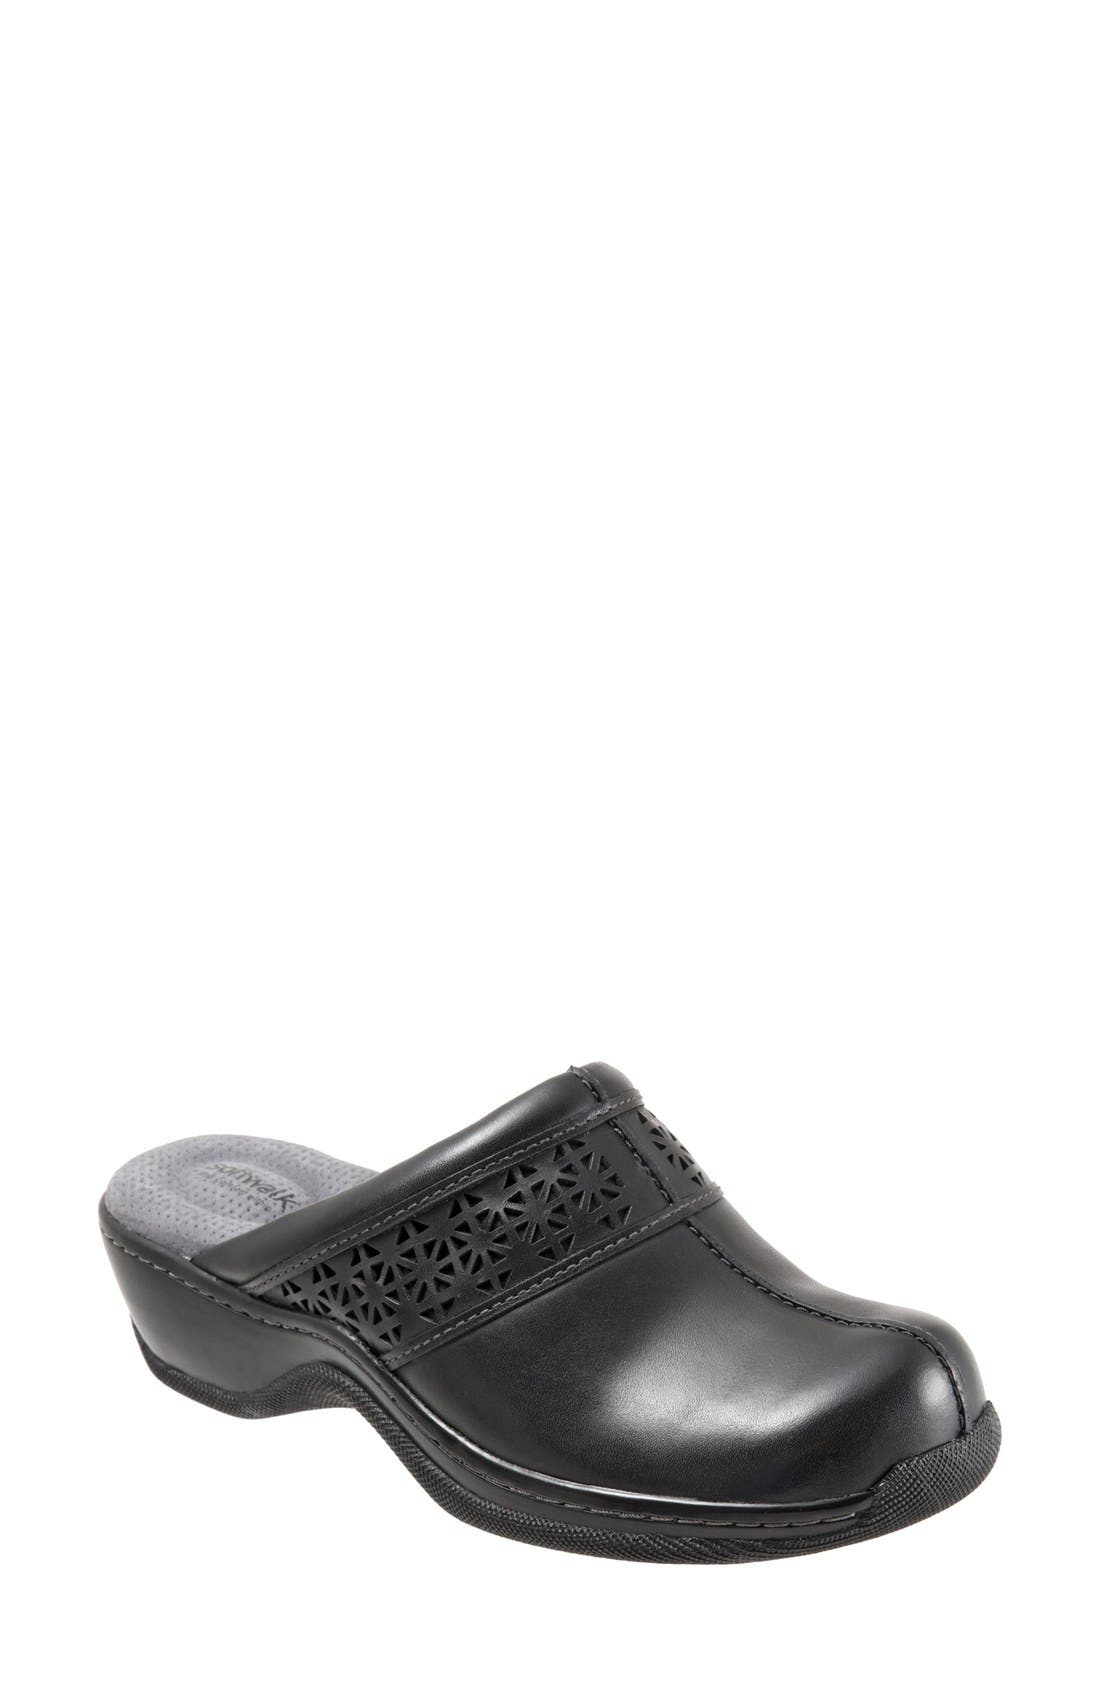 SOFTWALK<SUP>®</SUP>, 'Abby' Clog, Main thumbnail 1, color, BLACK LEATHER